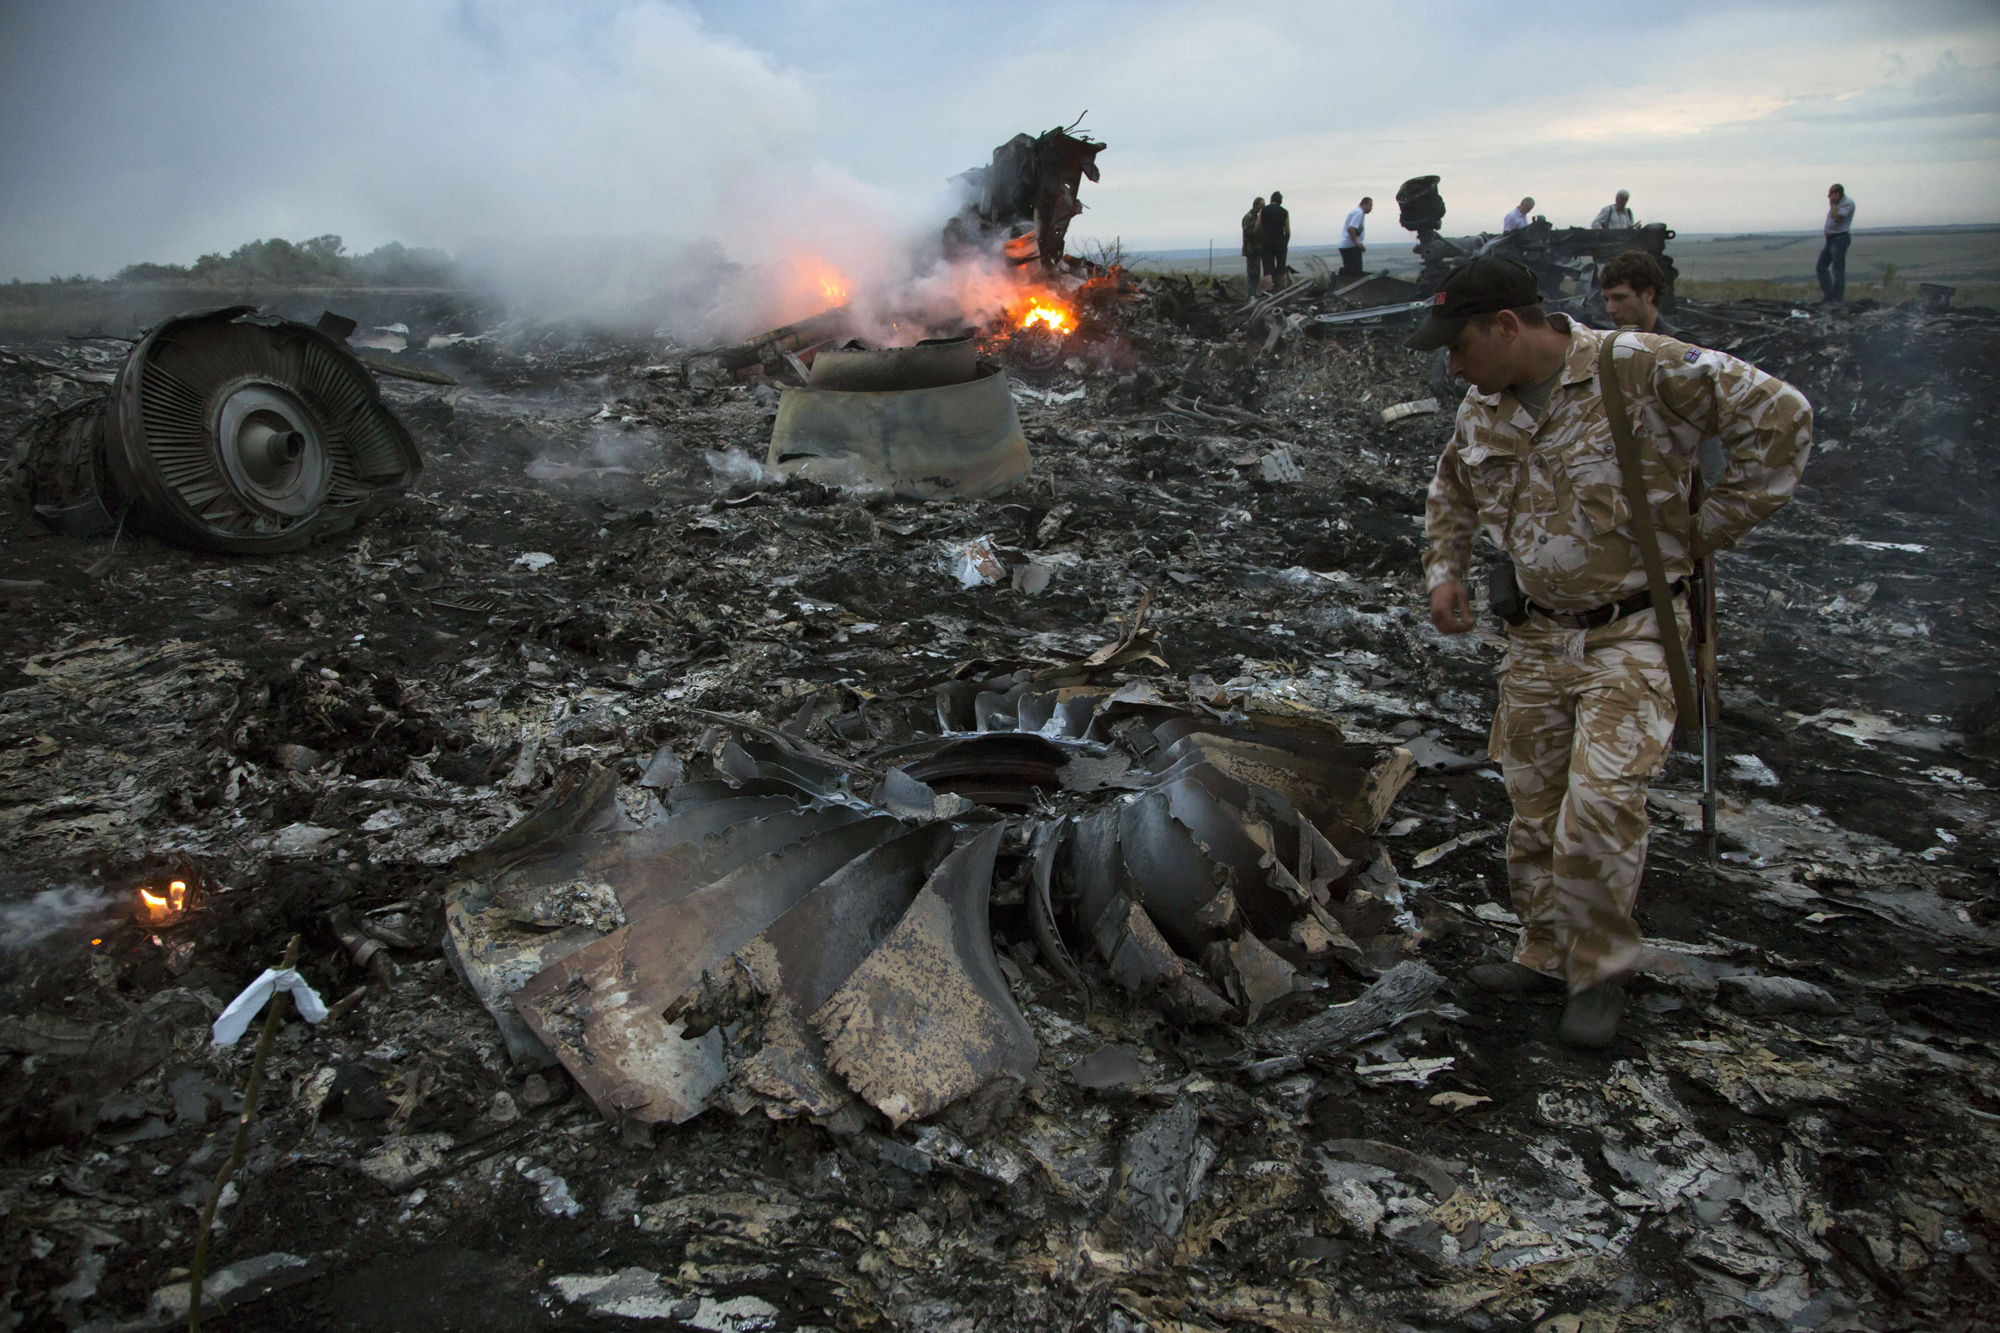 People walk amongst the debris at the crash site of a passenger plane near the village of Grabovo, Ukraine, July 17, 2014.